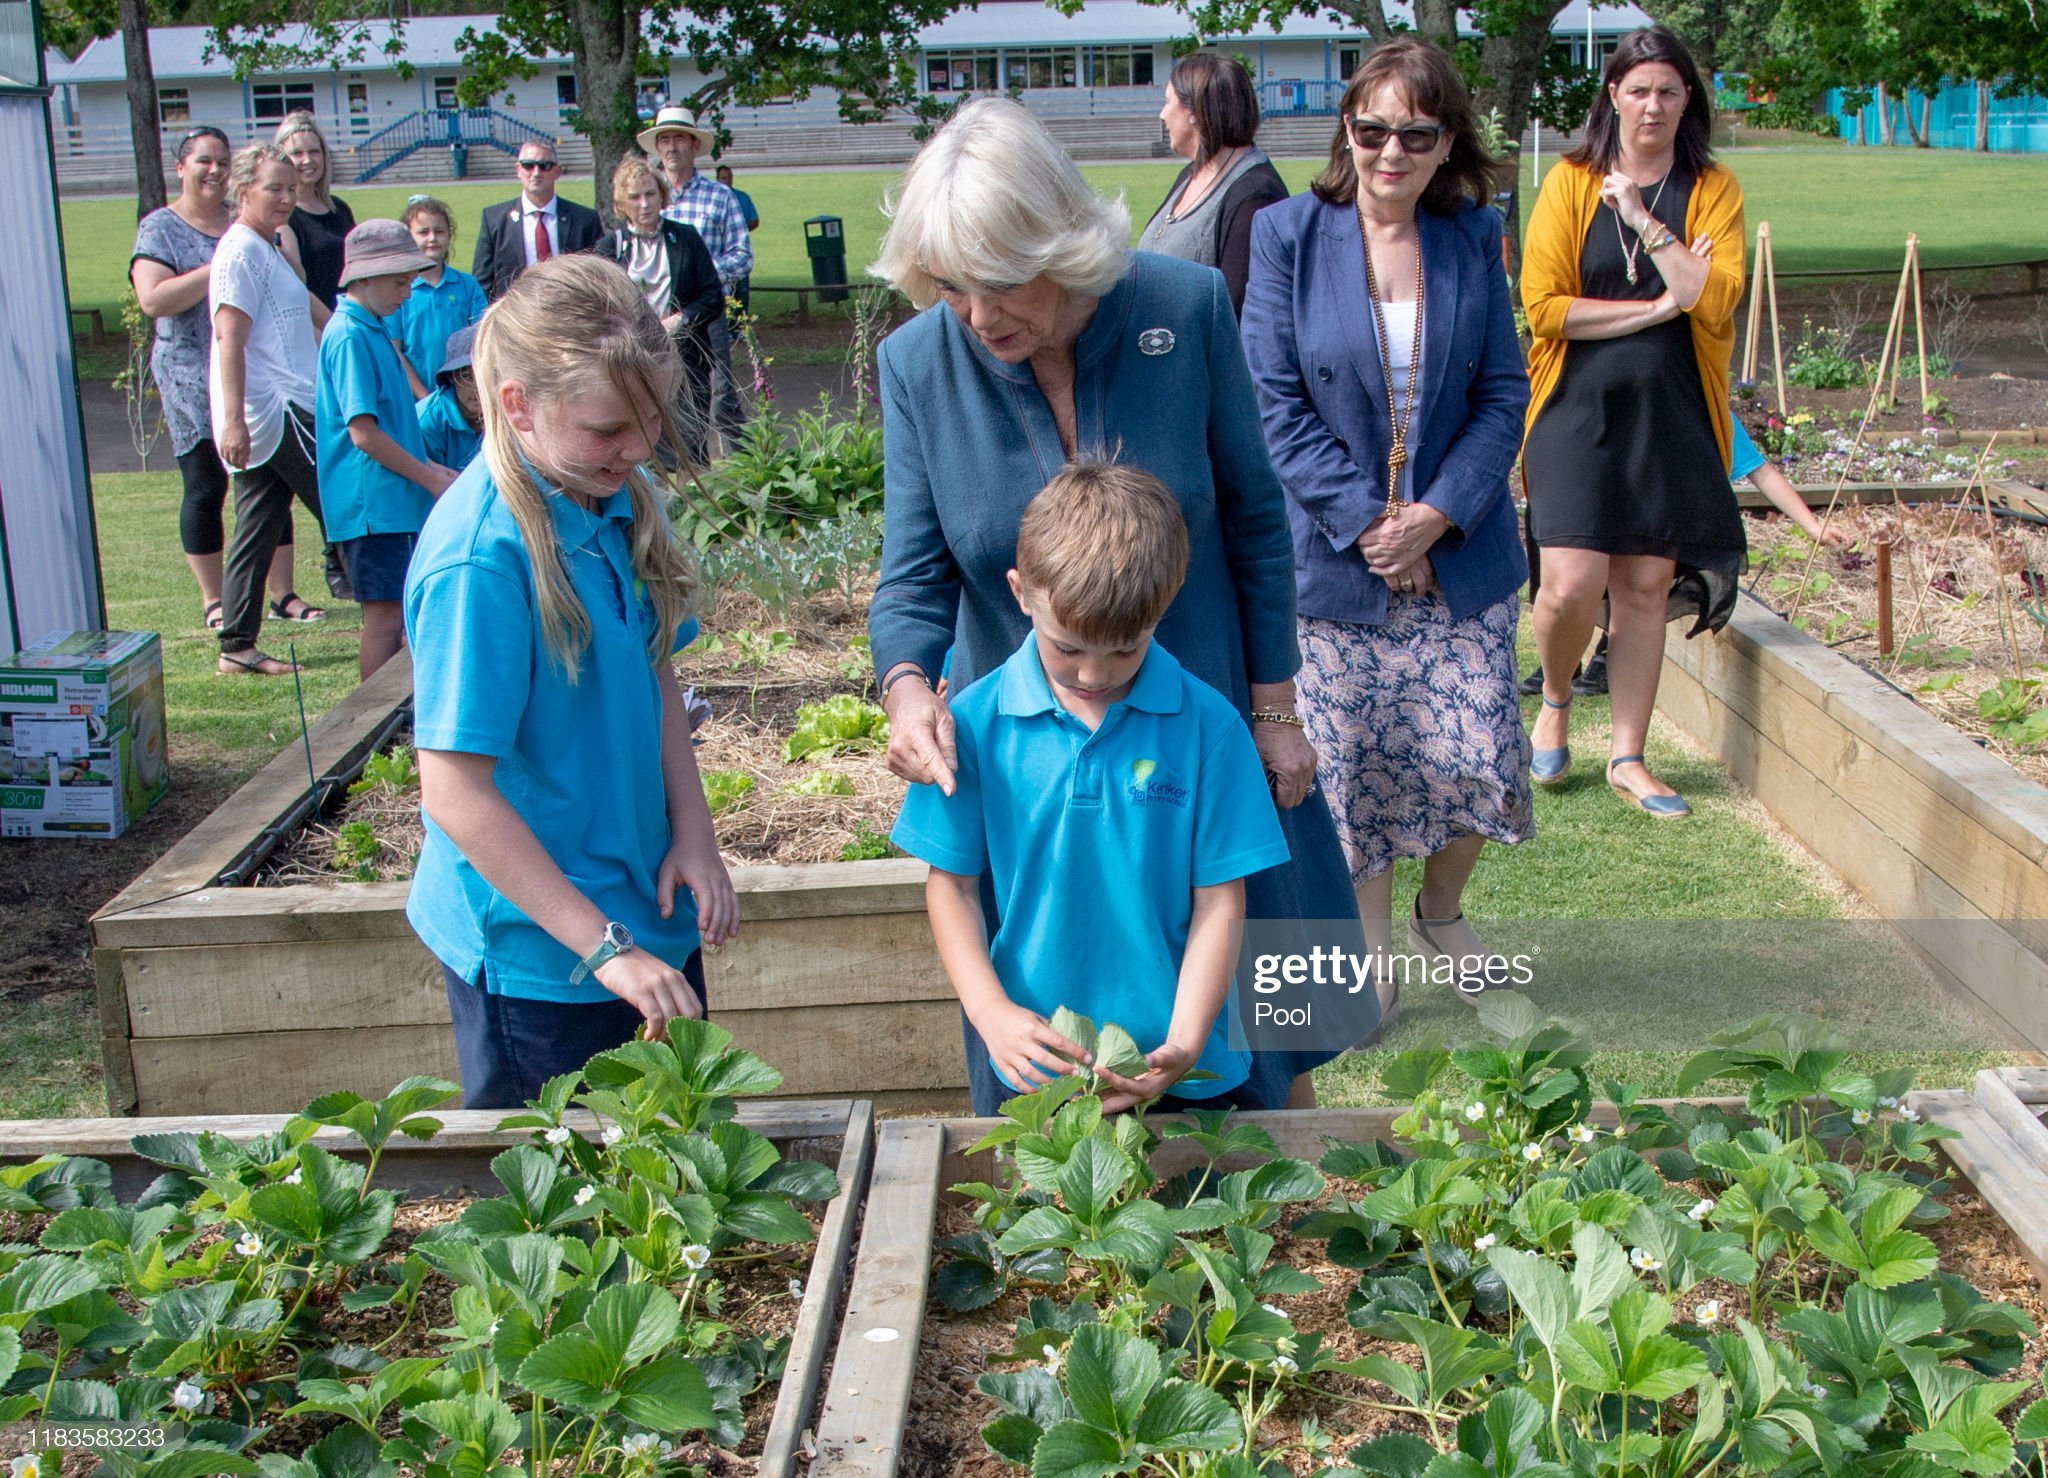 CASA REAL BRITÁNICA - Página 75 Camilla-duchess-of-cornwall-visits-kerikeri-primary-school-on-20-in-picture-id1183583233?s=2048x2048